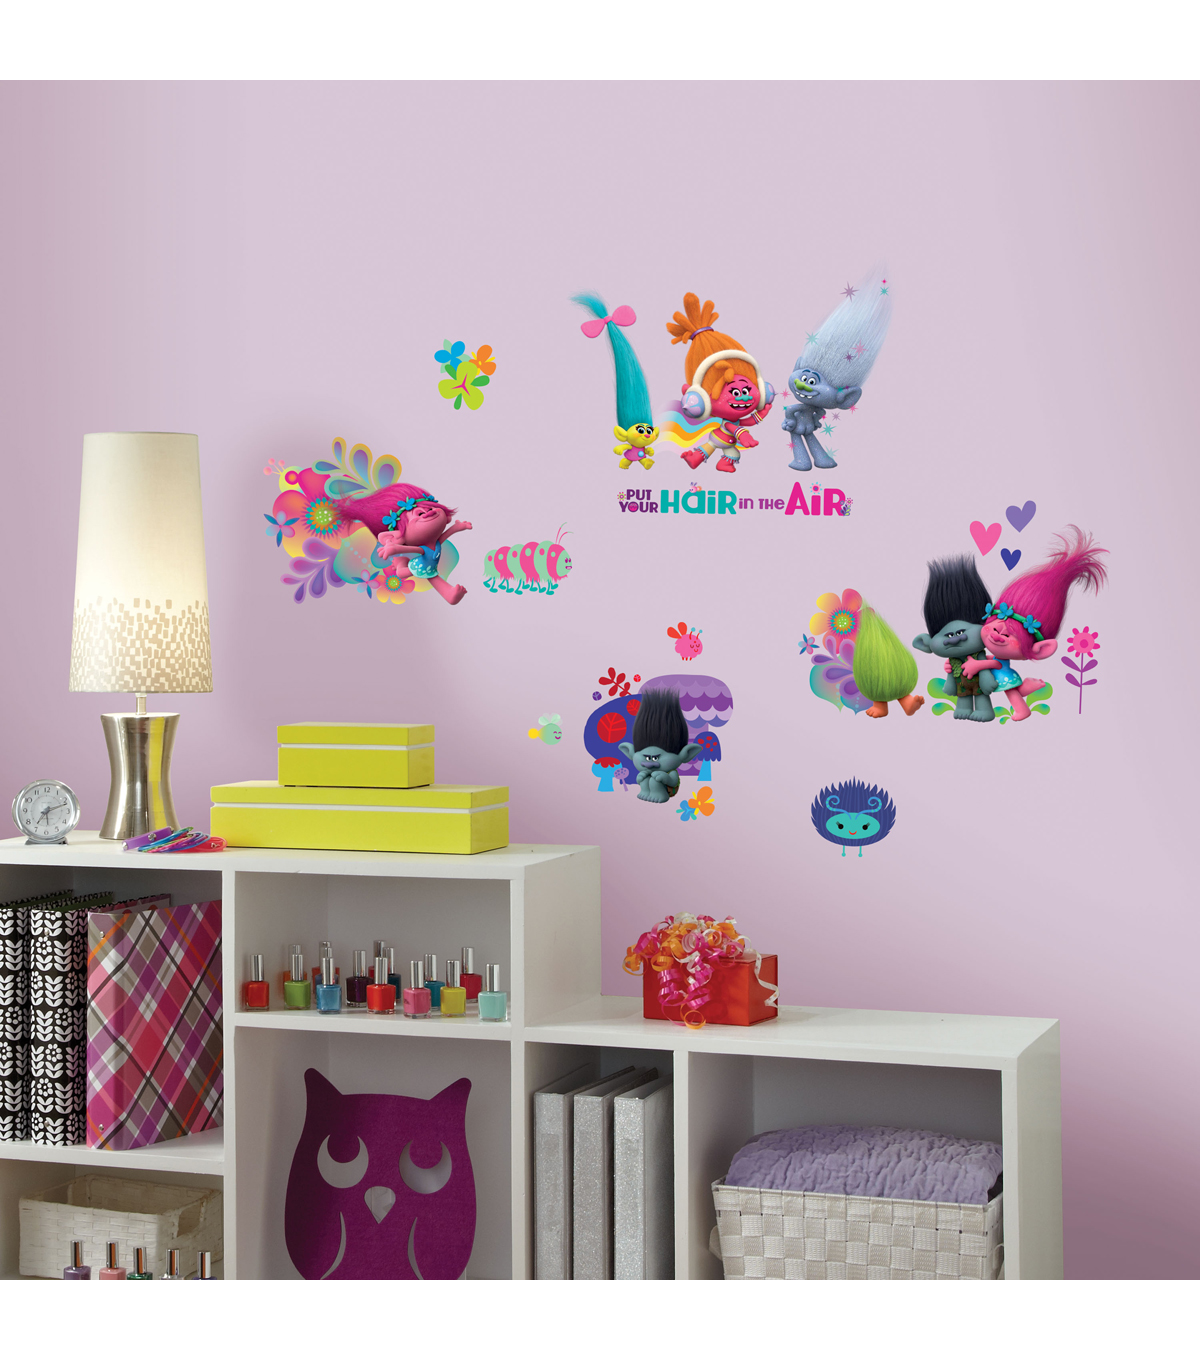 Trolls Wall Decor Trolls Movie Peel Stick Wall Decals On Super Hotels Gives Away Old Cheesy Art During Basel